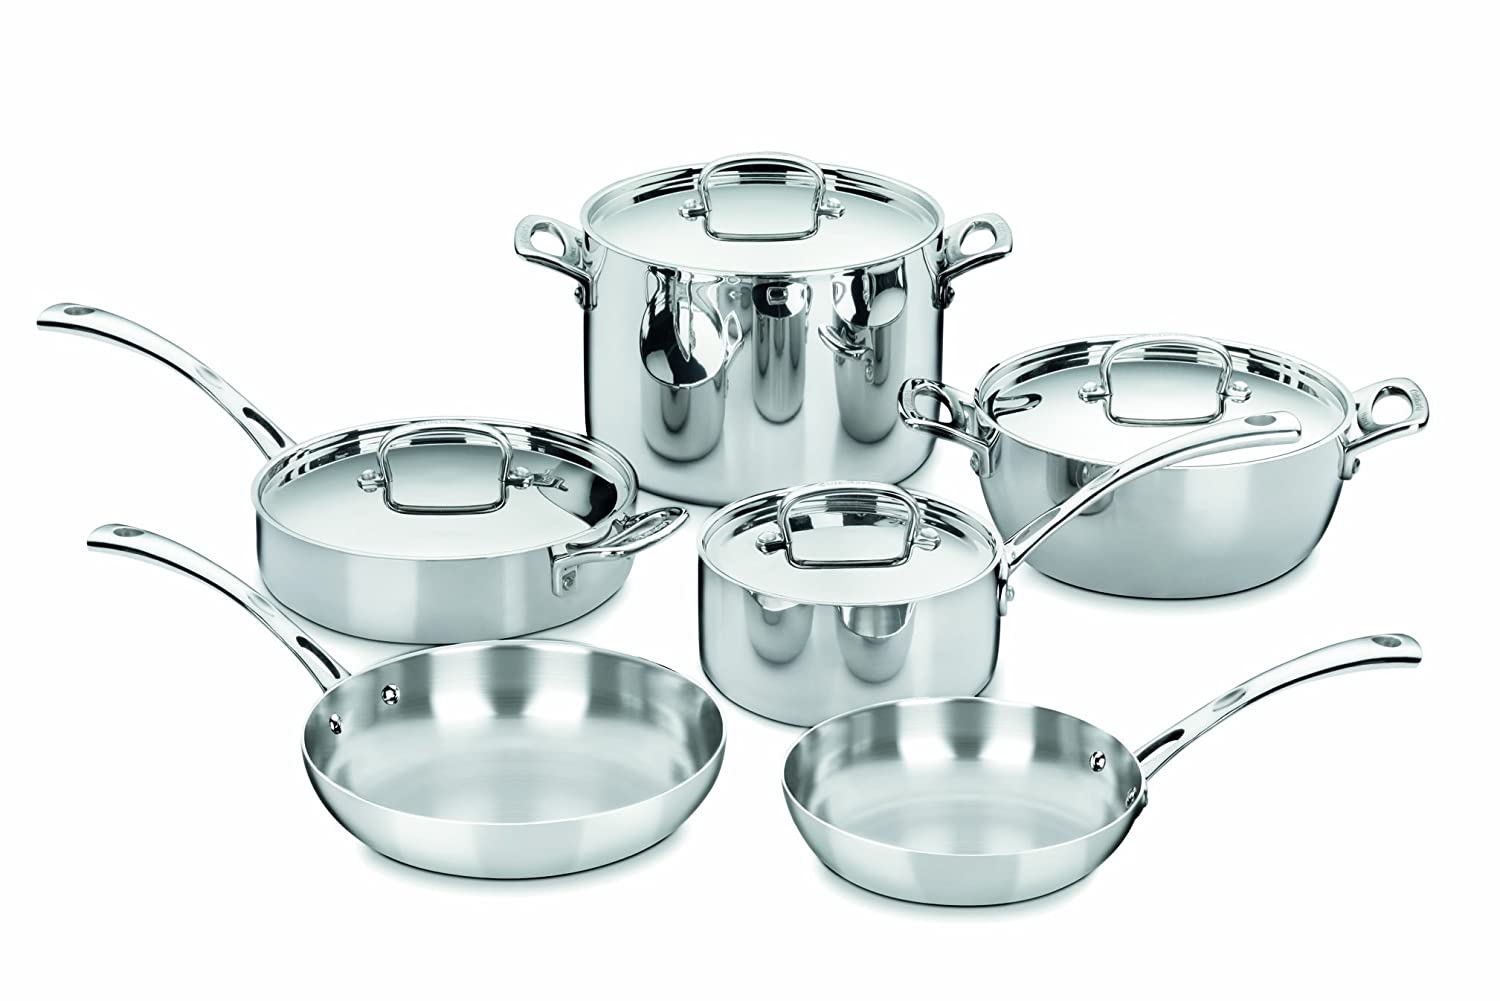 Cuisinart French Classic Tri-Ply Stainless Cookware 10-Piece Set